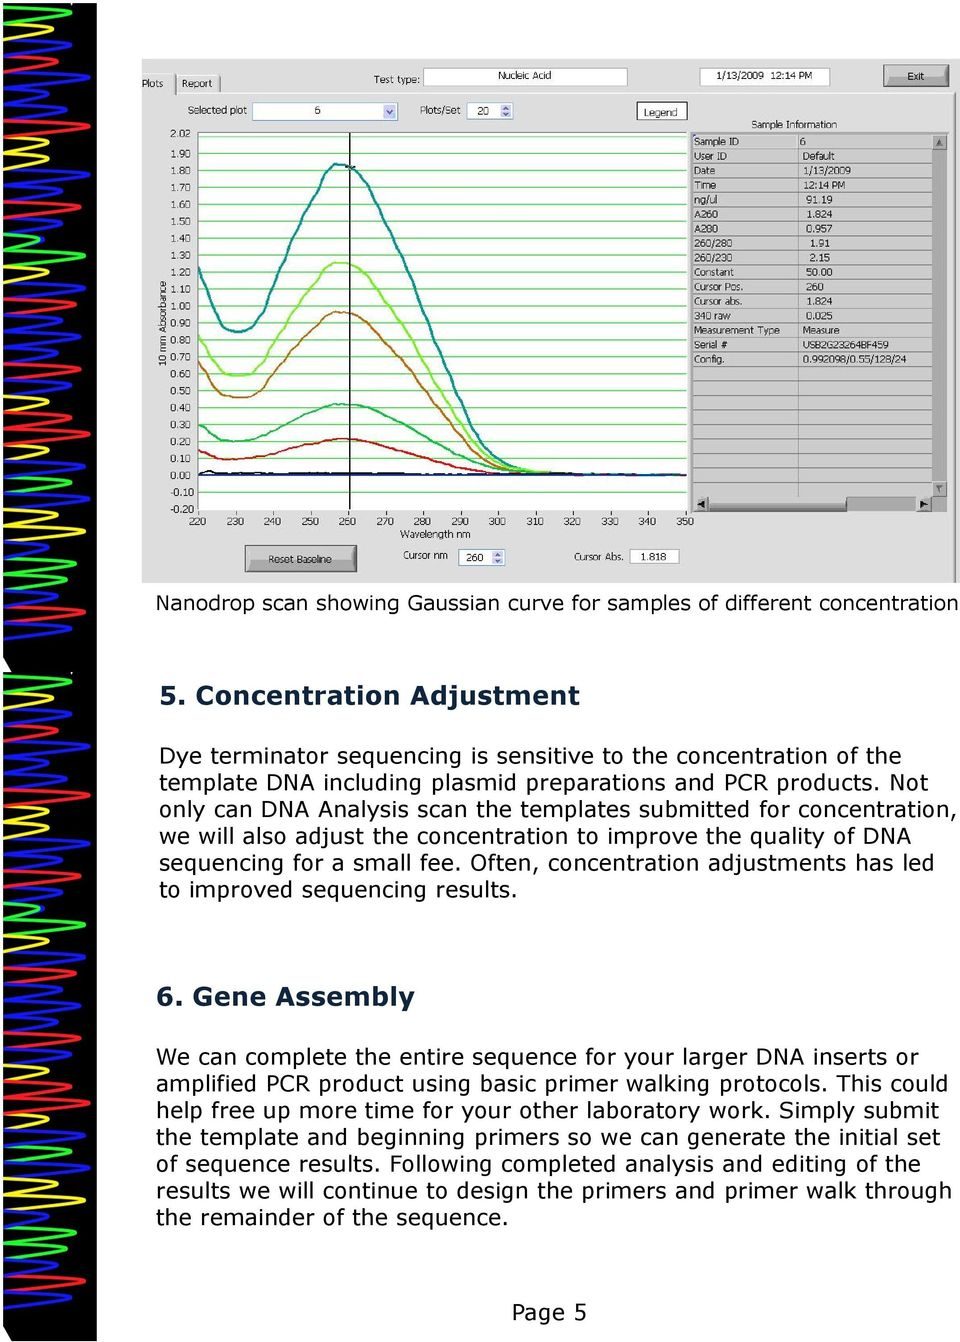 Not only can DNA Analysis scan the templates submitted for concentration, we will also adjust the concentration to improve the quality of DNA sequencing for a small fee.